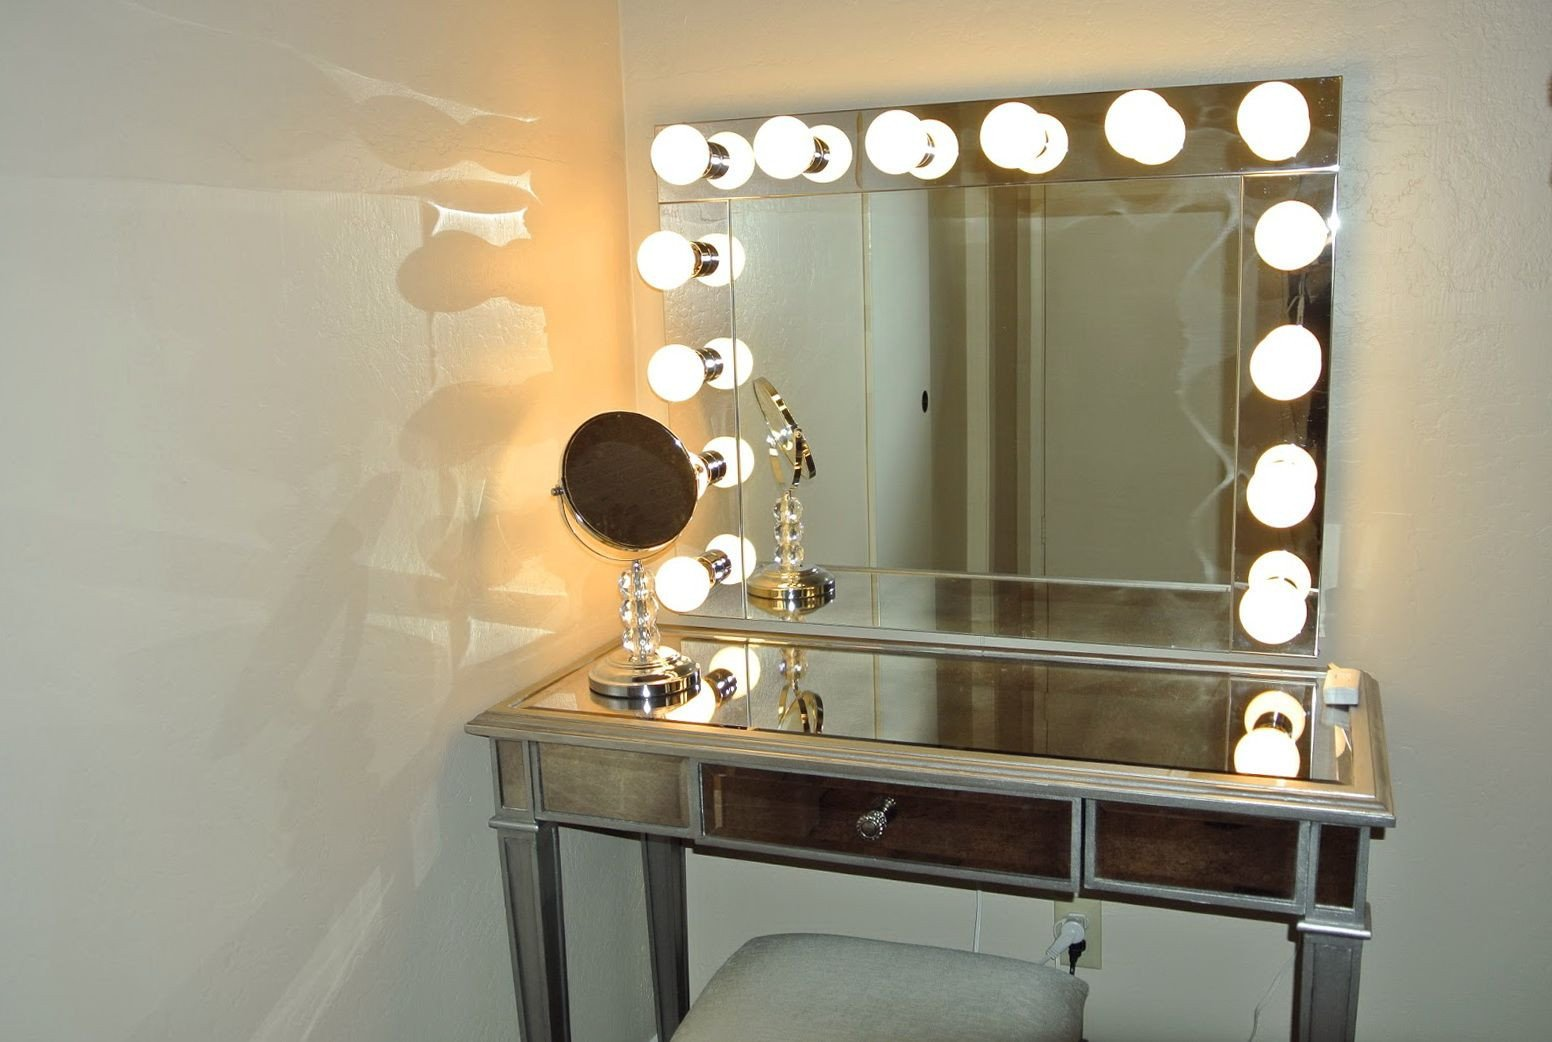 Bedroom Vanities with Light Inspirational Vanity Girl Hollywood Mirror Silver